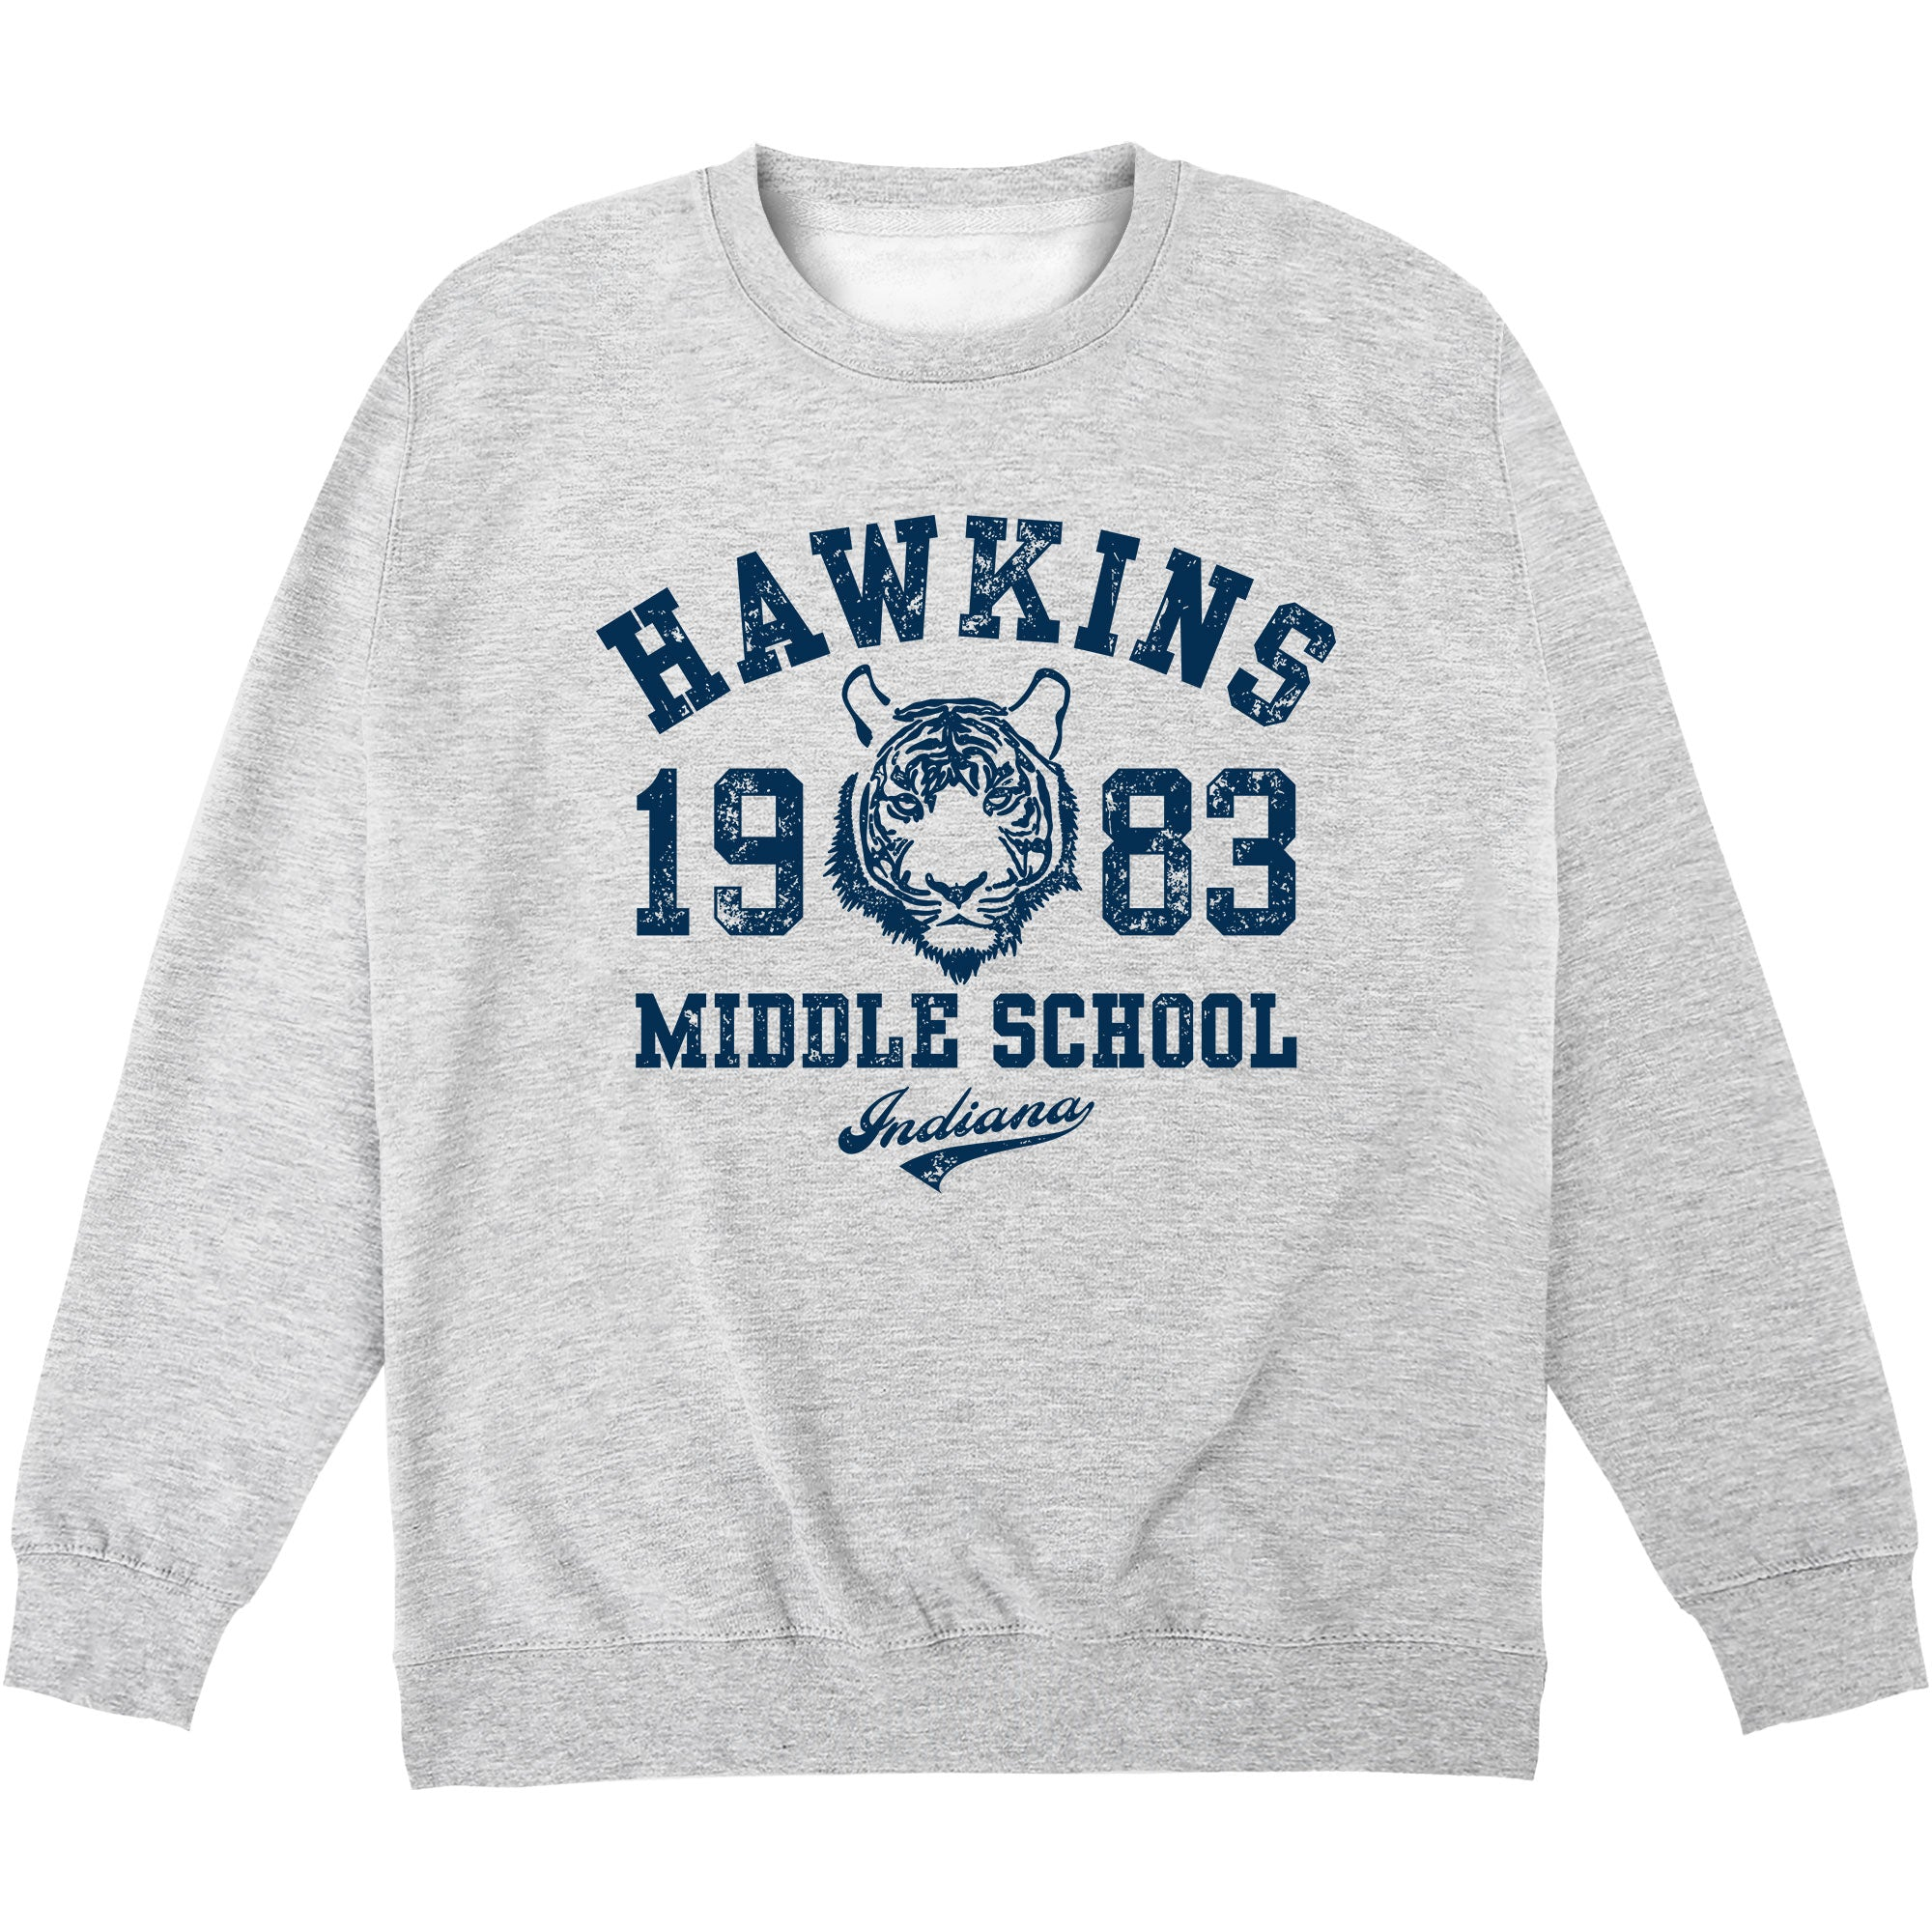 CHEAP Inspired By Stranger Things – Hawkins Middle School Sweatshirt 24322676781 – Clothing Accessories